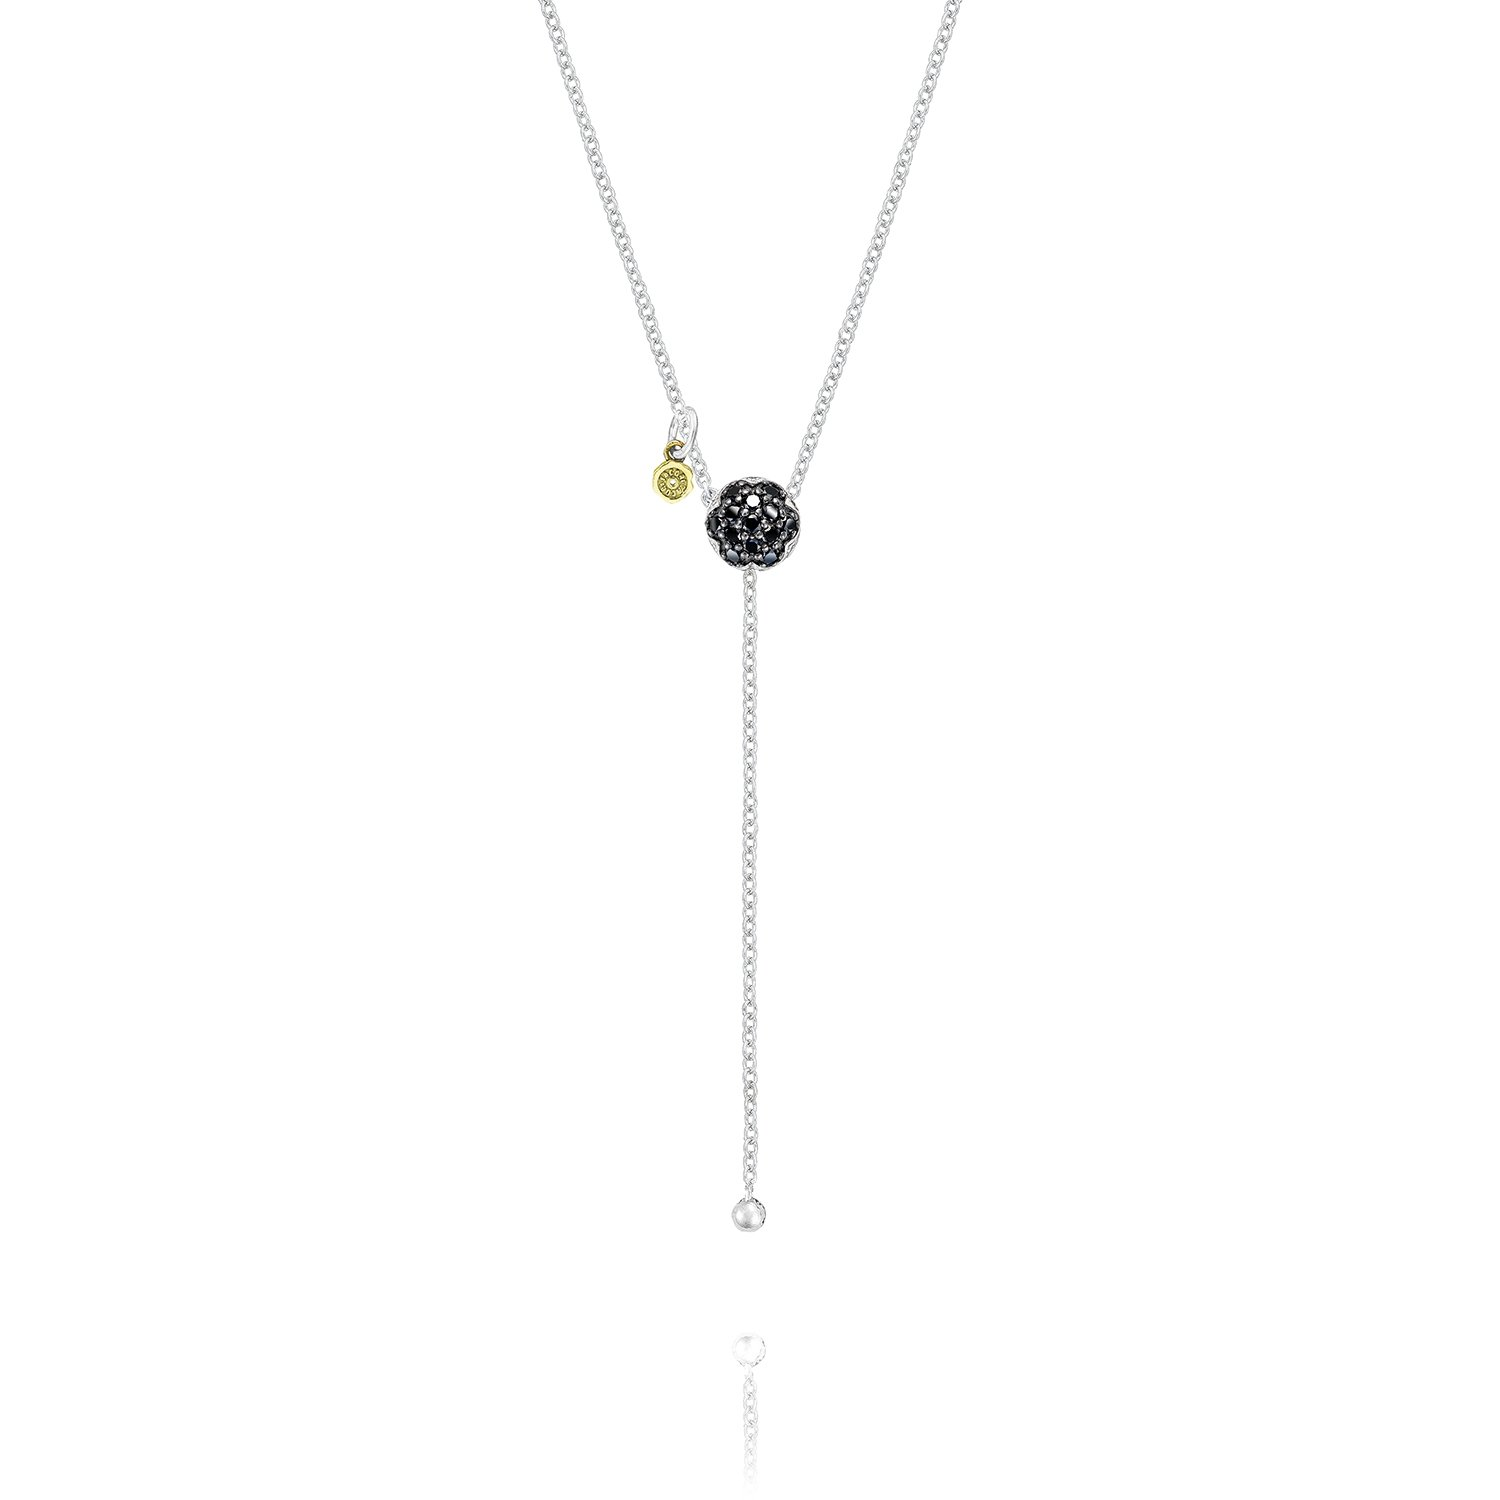 Tacori SN21844 Sterling Silver Sonoma Mist Black Diamonds Pavé Dew Drop Lariat Necklace, 26'' (0.19 cttw, H to I Color, I2 to I3 Clarity)